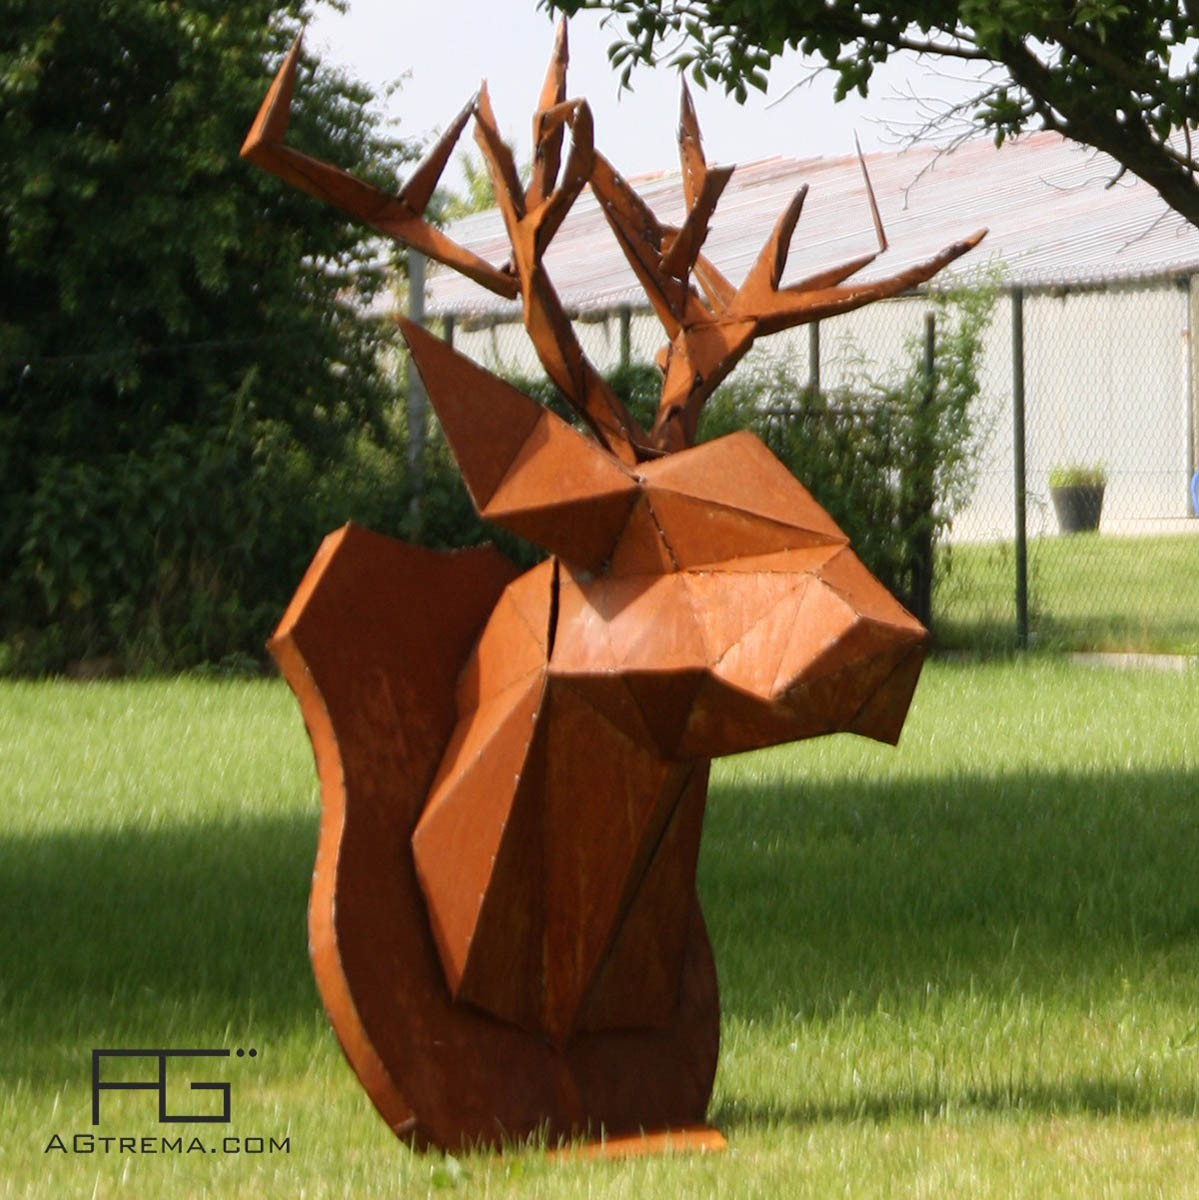 troph e tete de cerf origami en corten artisanat d 39 alsace agtrema. Black Bedroom Furniture Sets. Home Design Ideas